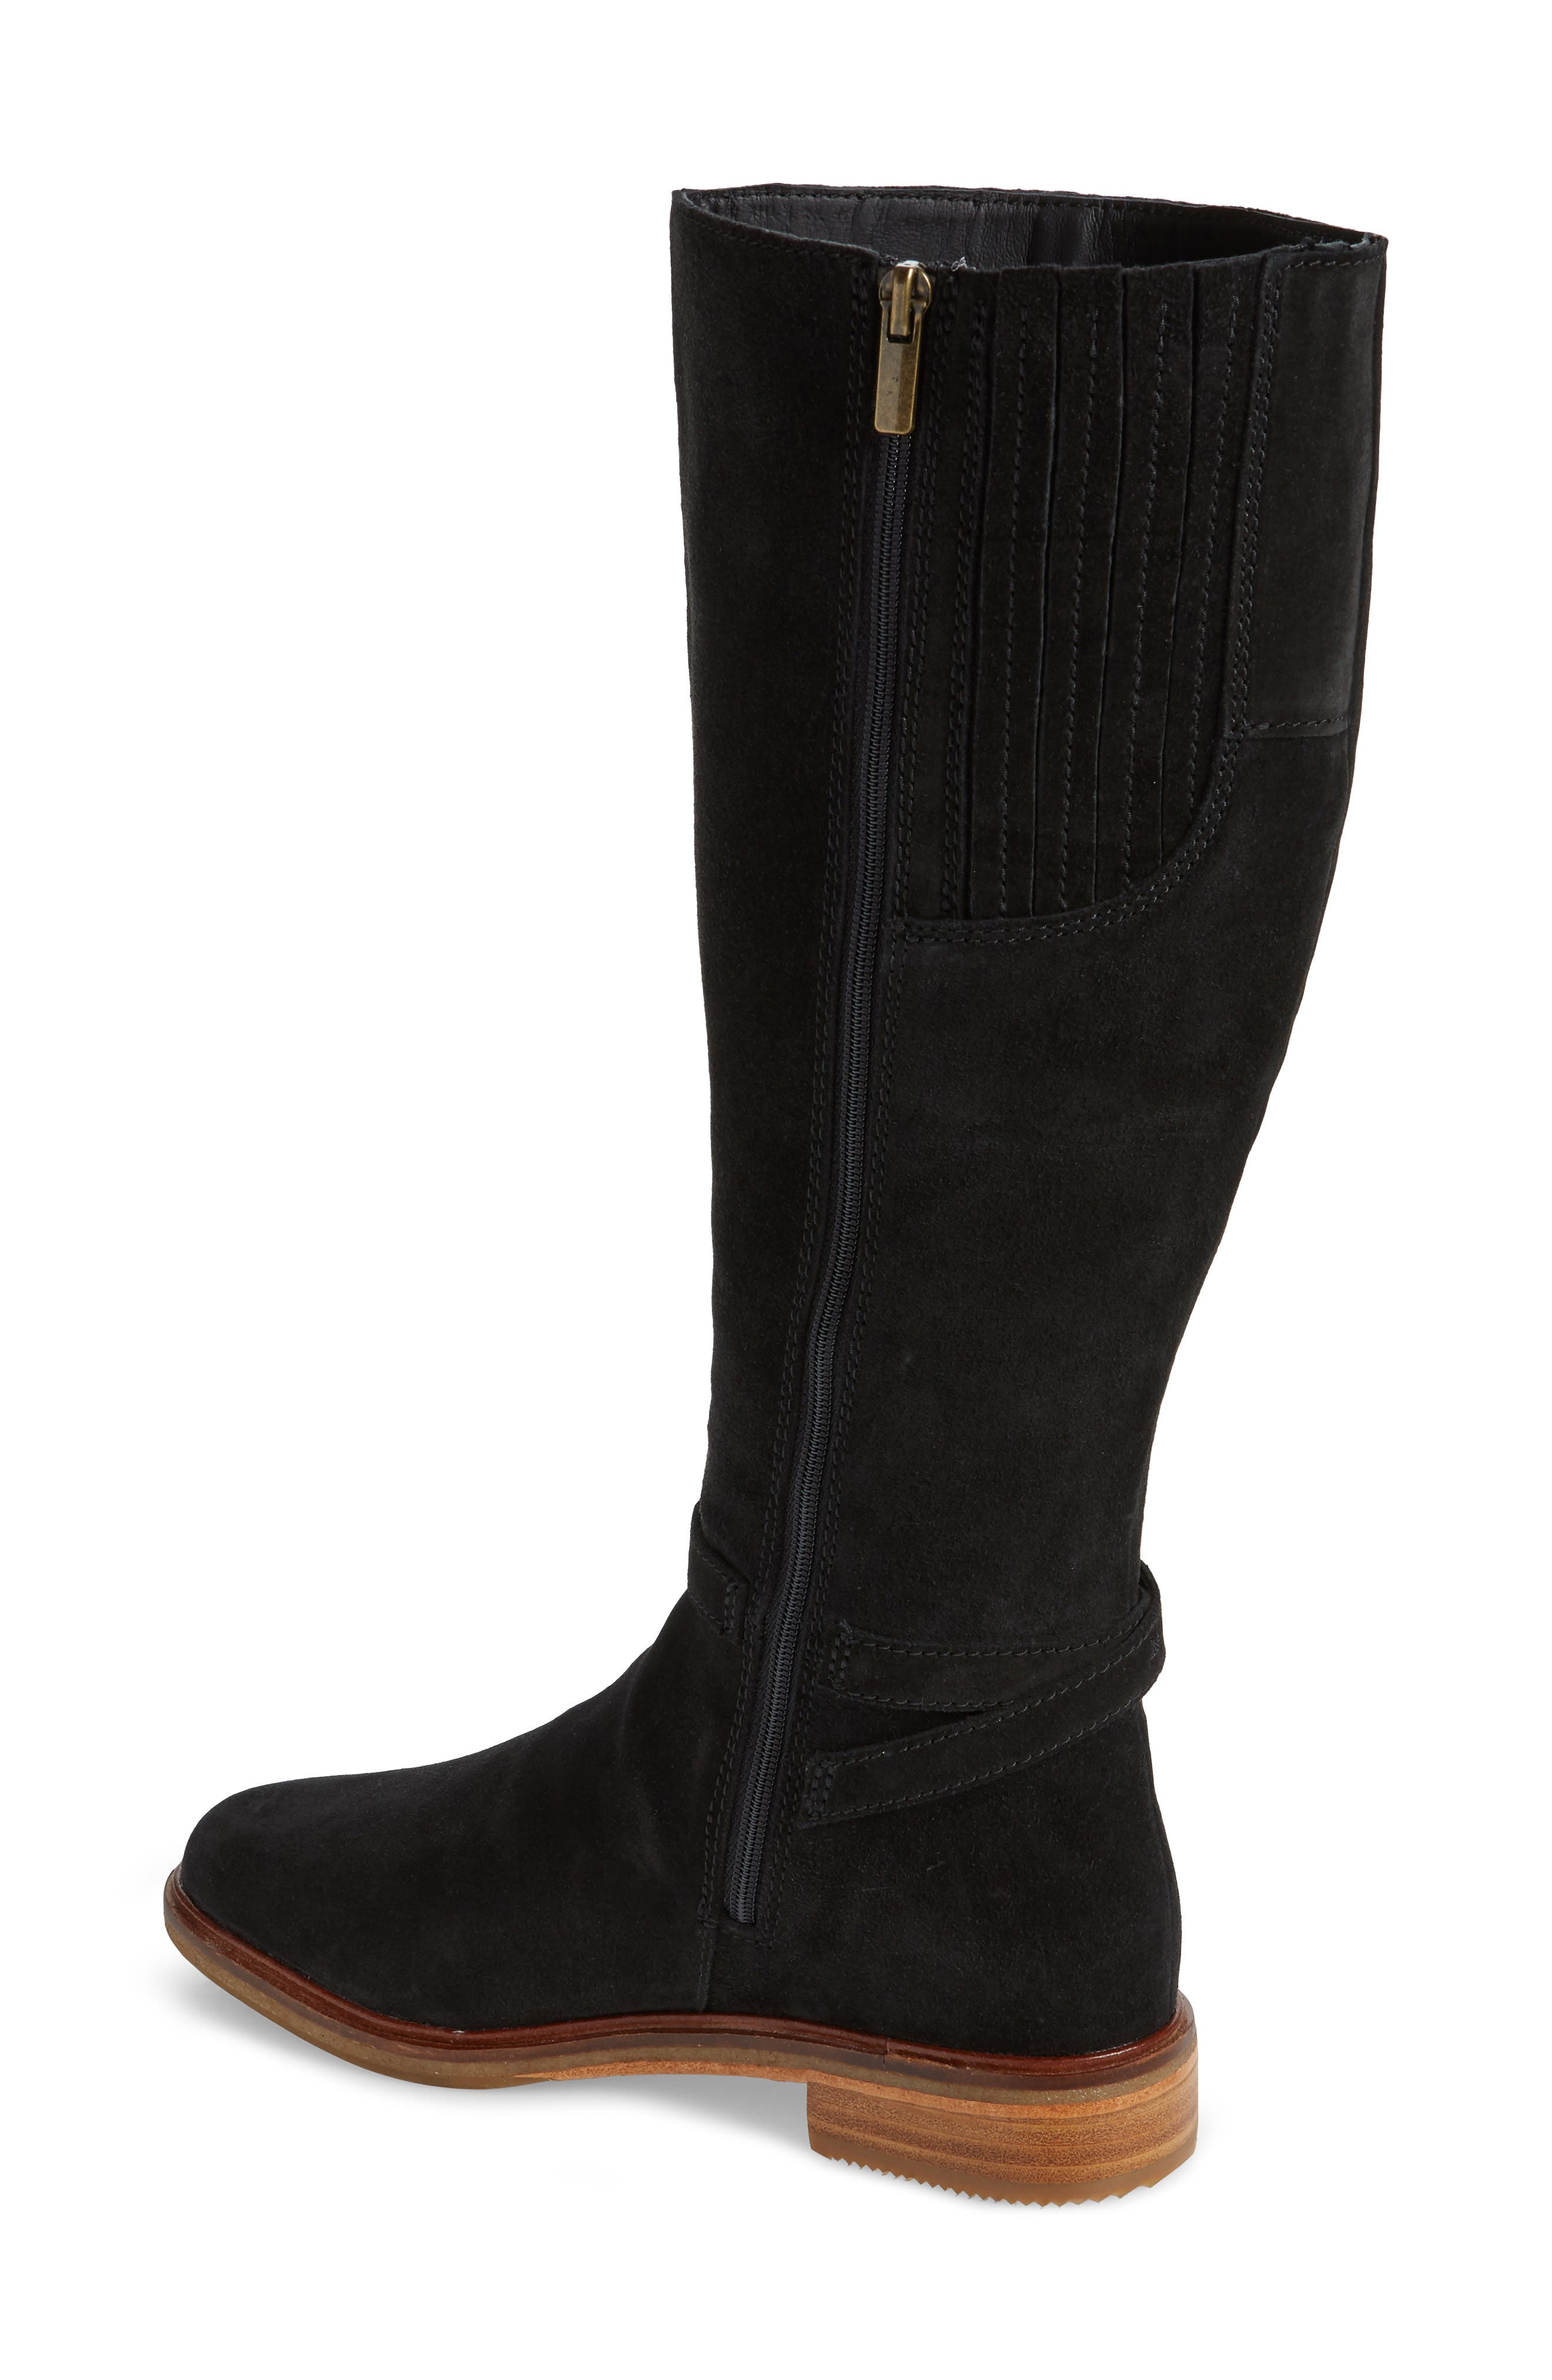 Clarkdale Clad Boot,                             Alternate thumbnail 2, color,                             BLACK SUEDE